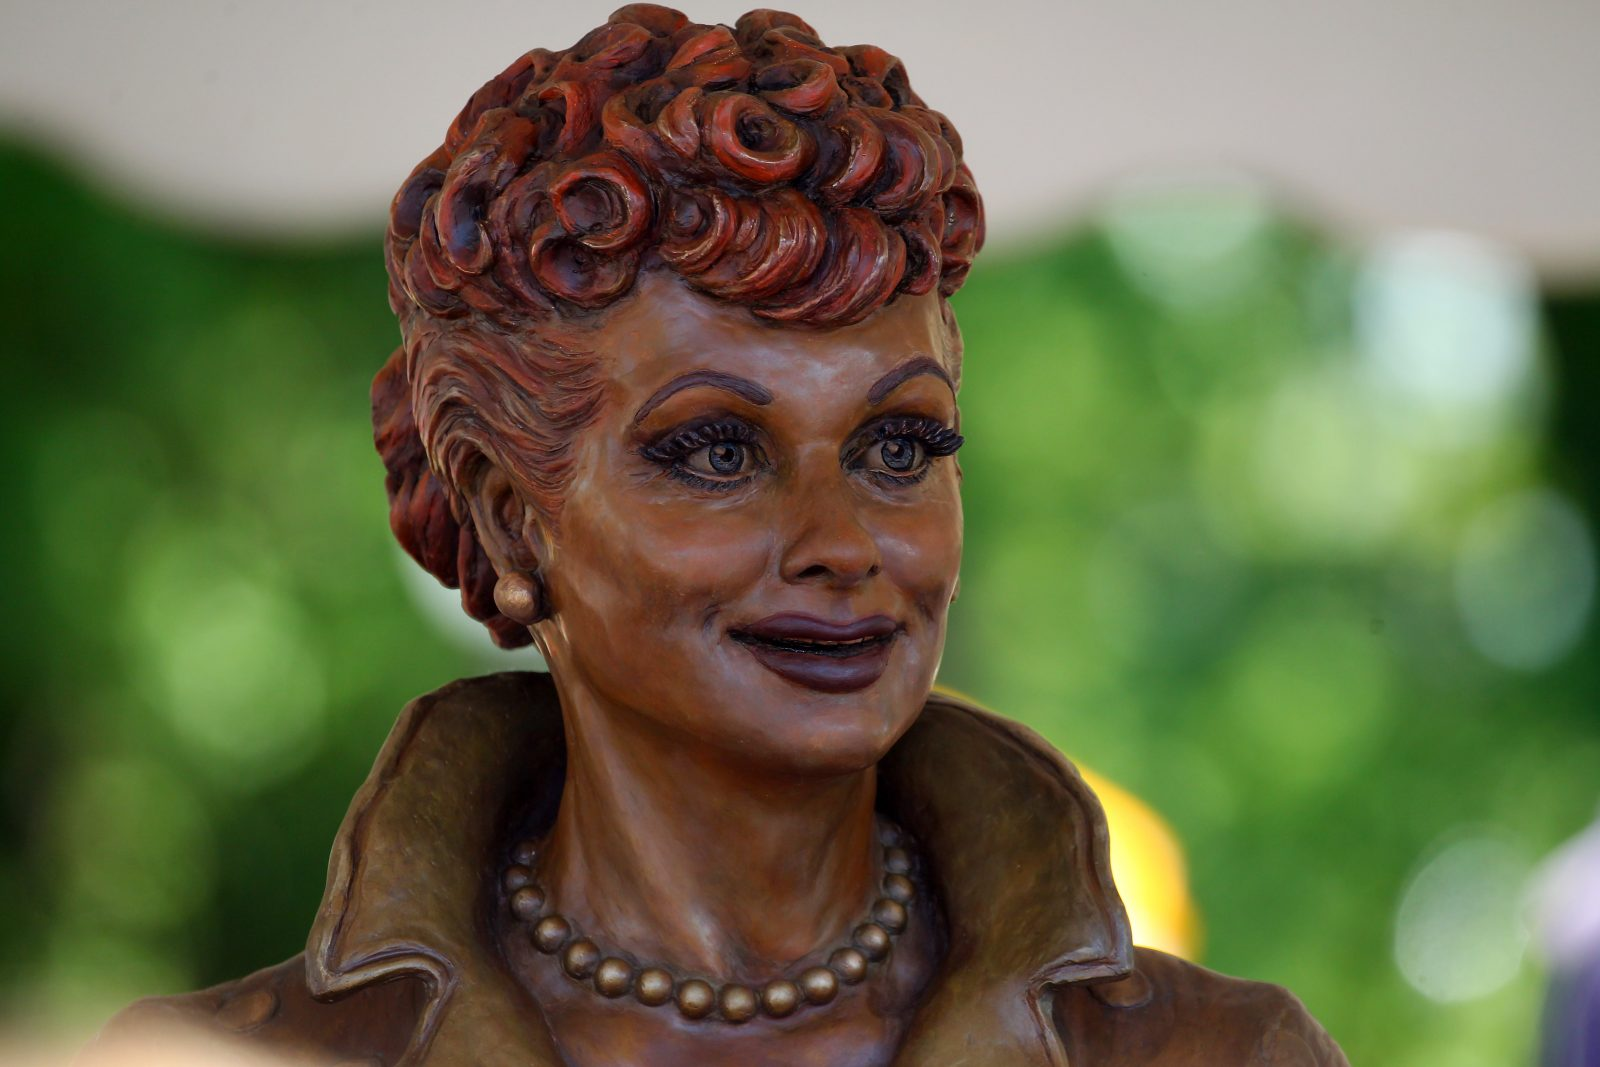 The new statue of Lucille Ball in the Lucille Ball Memorial Park in Celoron is a lasting reminder of the comedian's legacy. (Mark Mulville/Buffalo News)